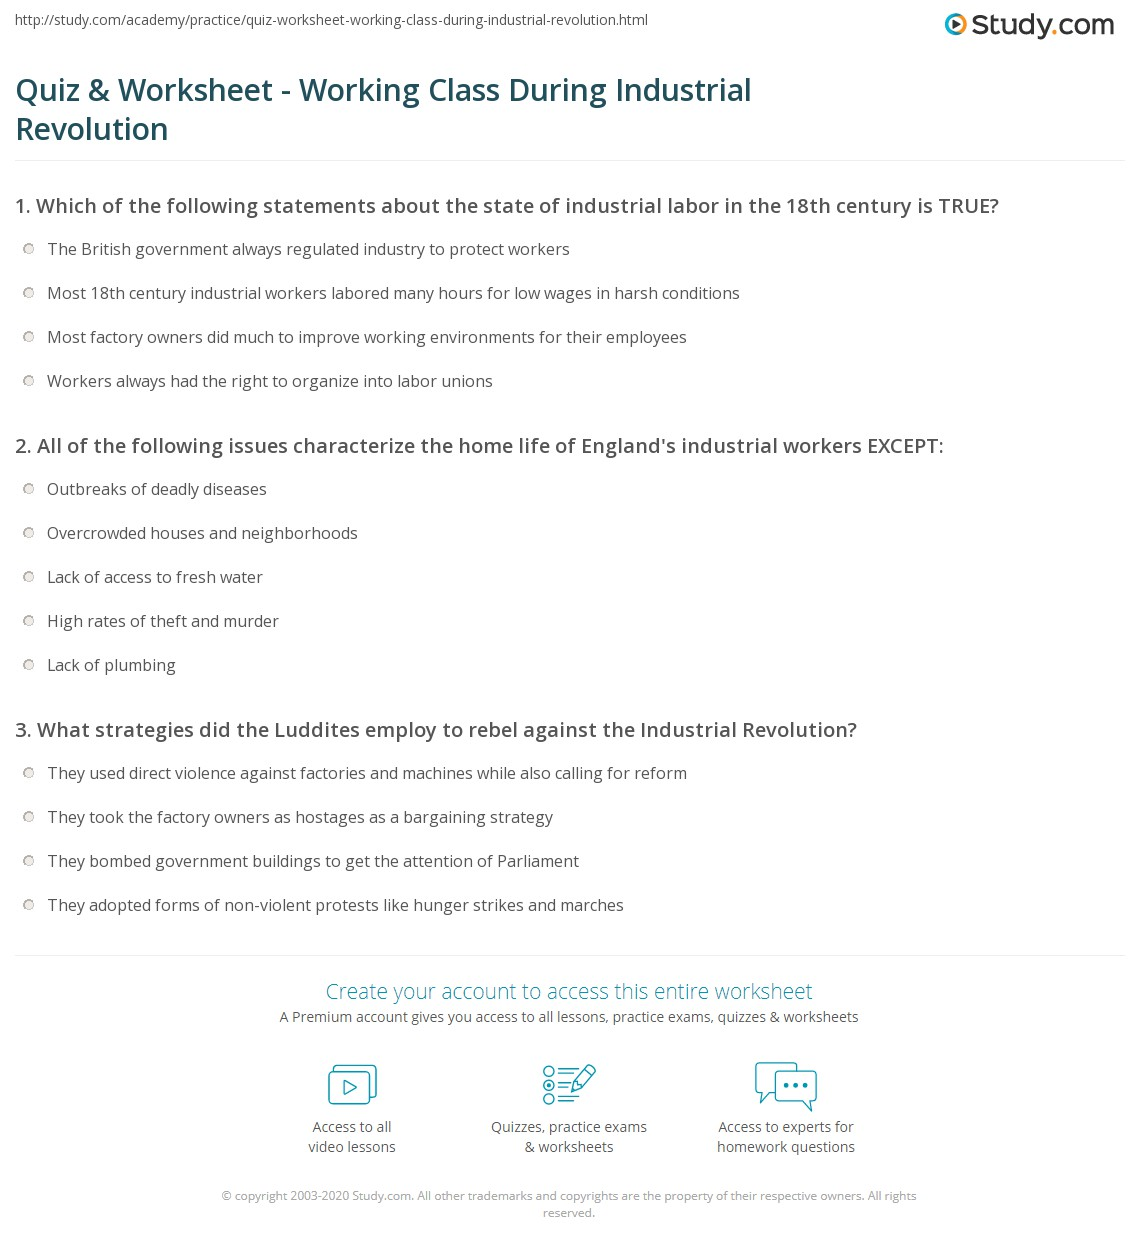 quiz worksheet working class during industrial revolution  print the working class during the industrial revolution growth ideologies worksheet